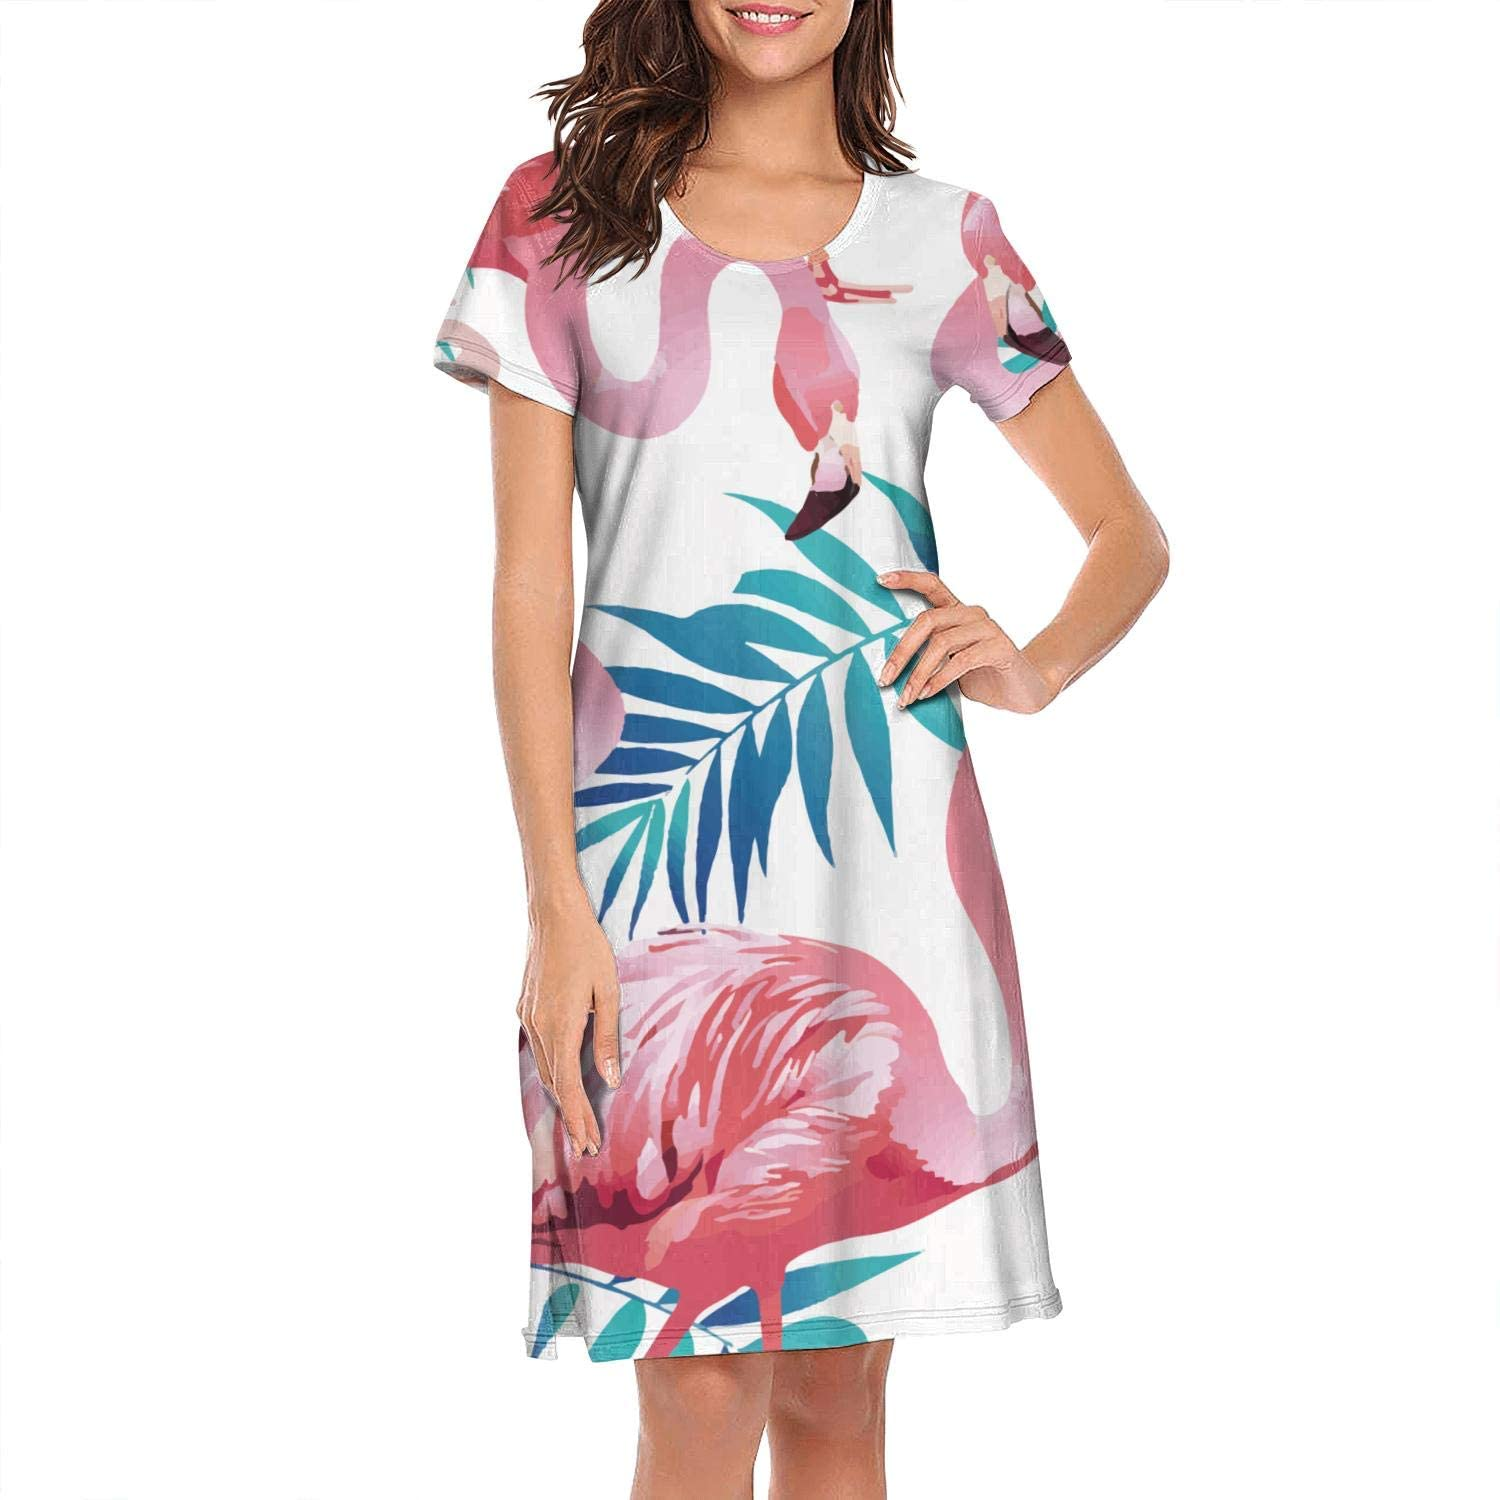 Tropical Flamingo Lilies Colorful Nightgown Print Pajamas for Women's O-Neck